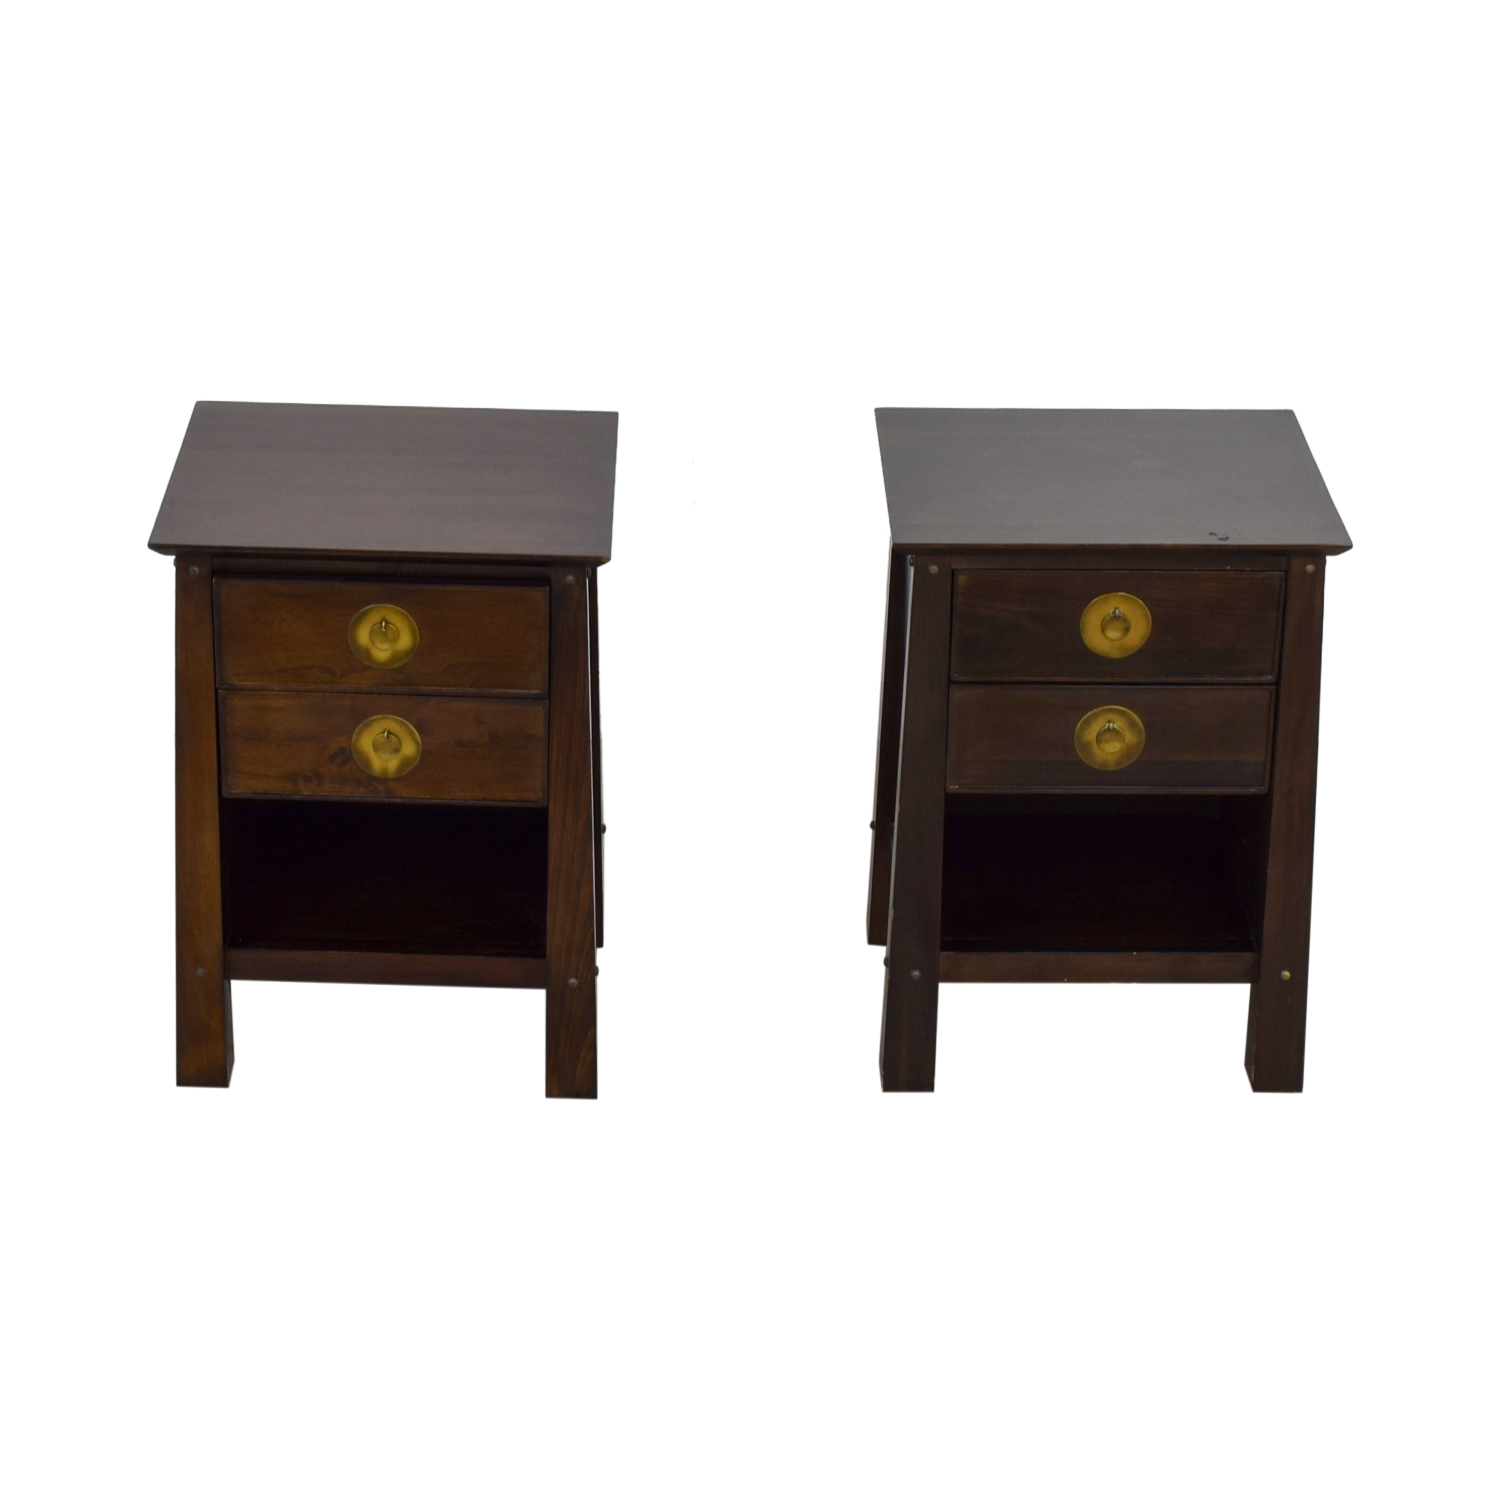 Pier 1 Imports Pier 1 Imports Two-Drawer Nightstands second hand